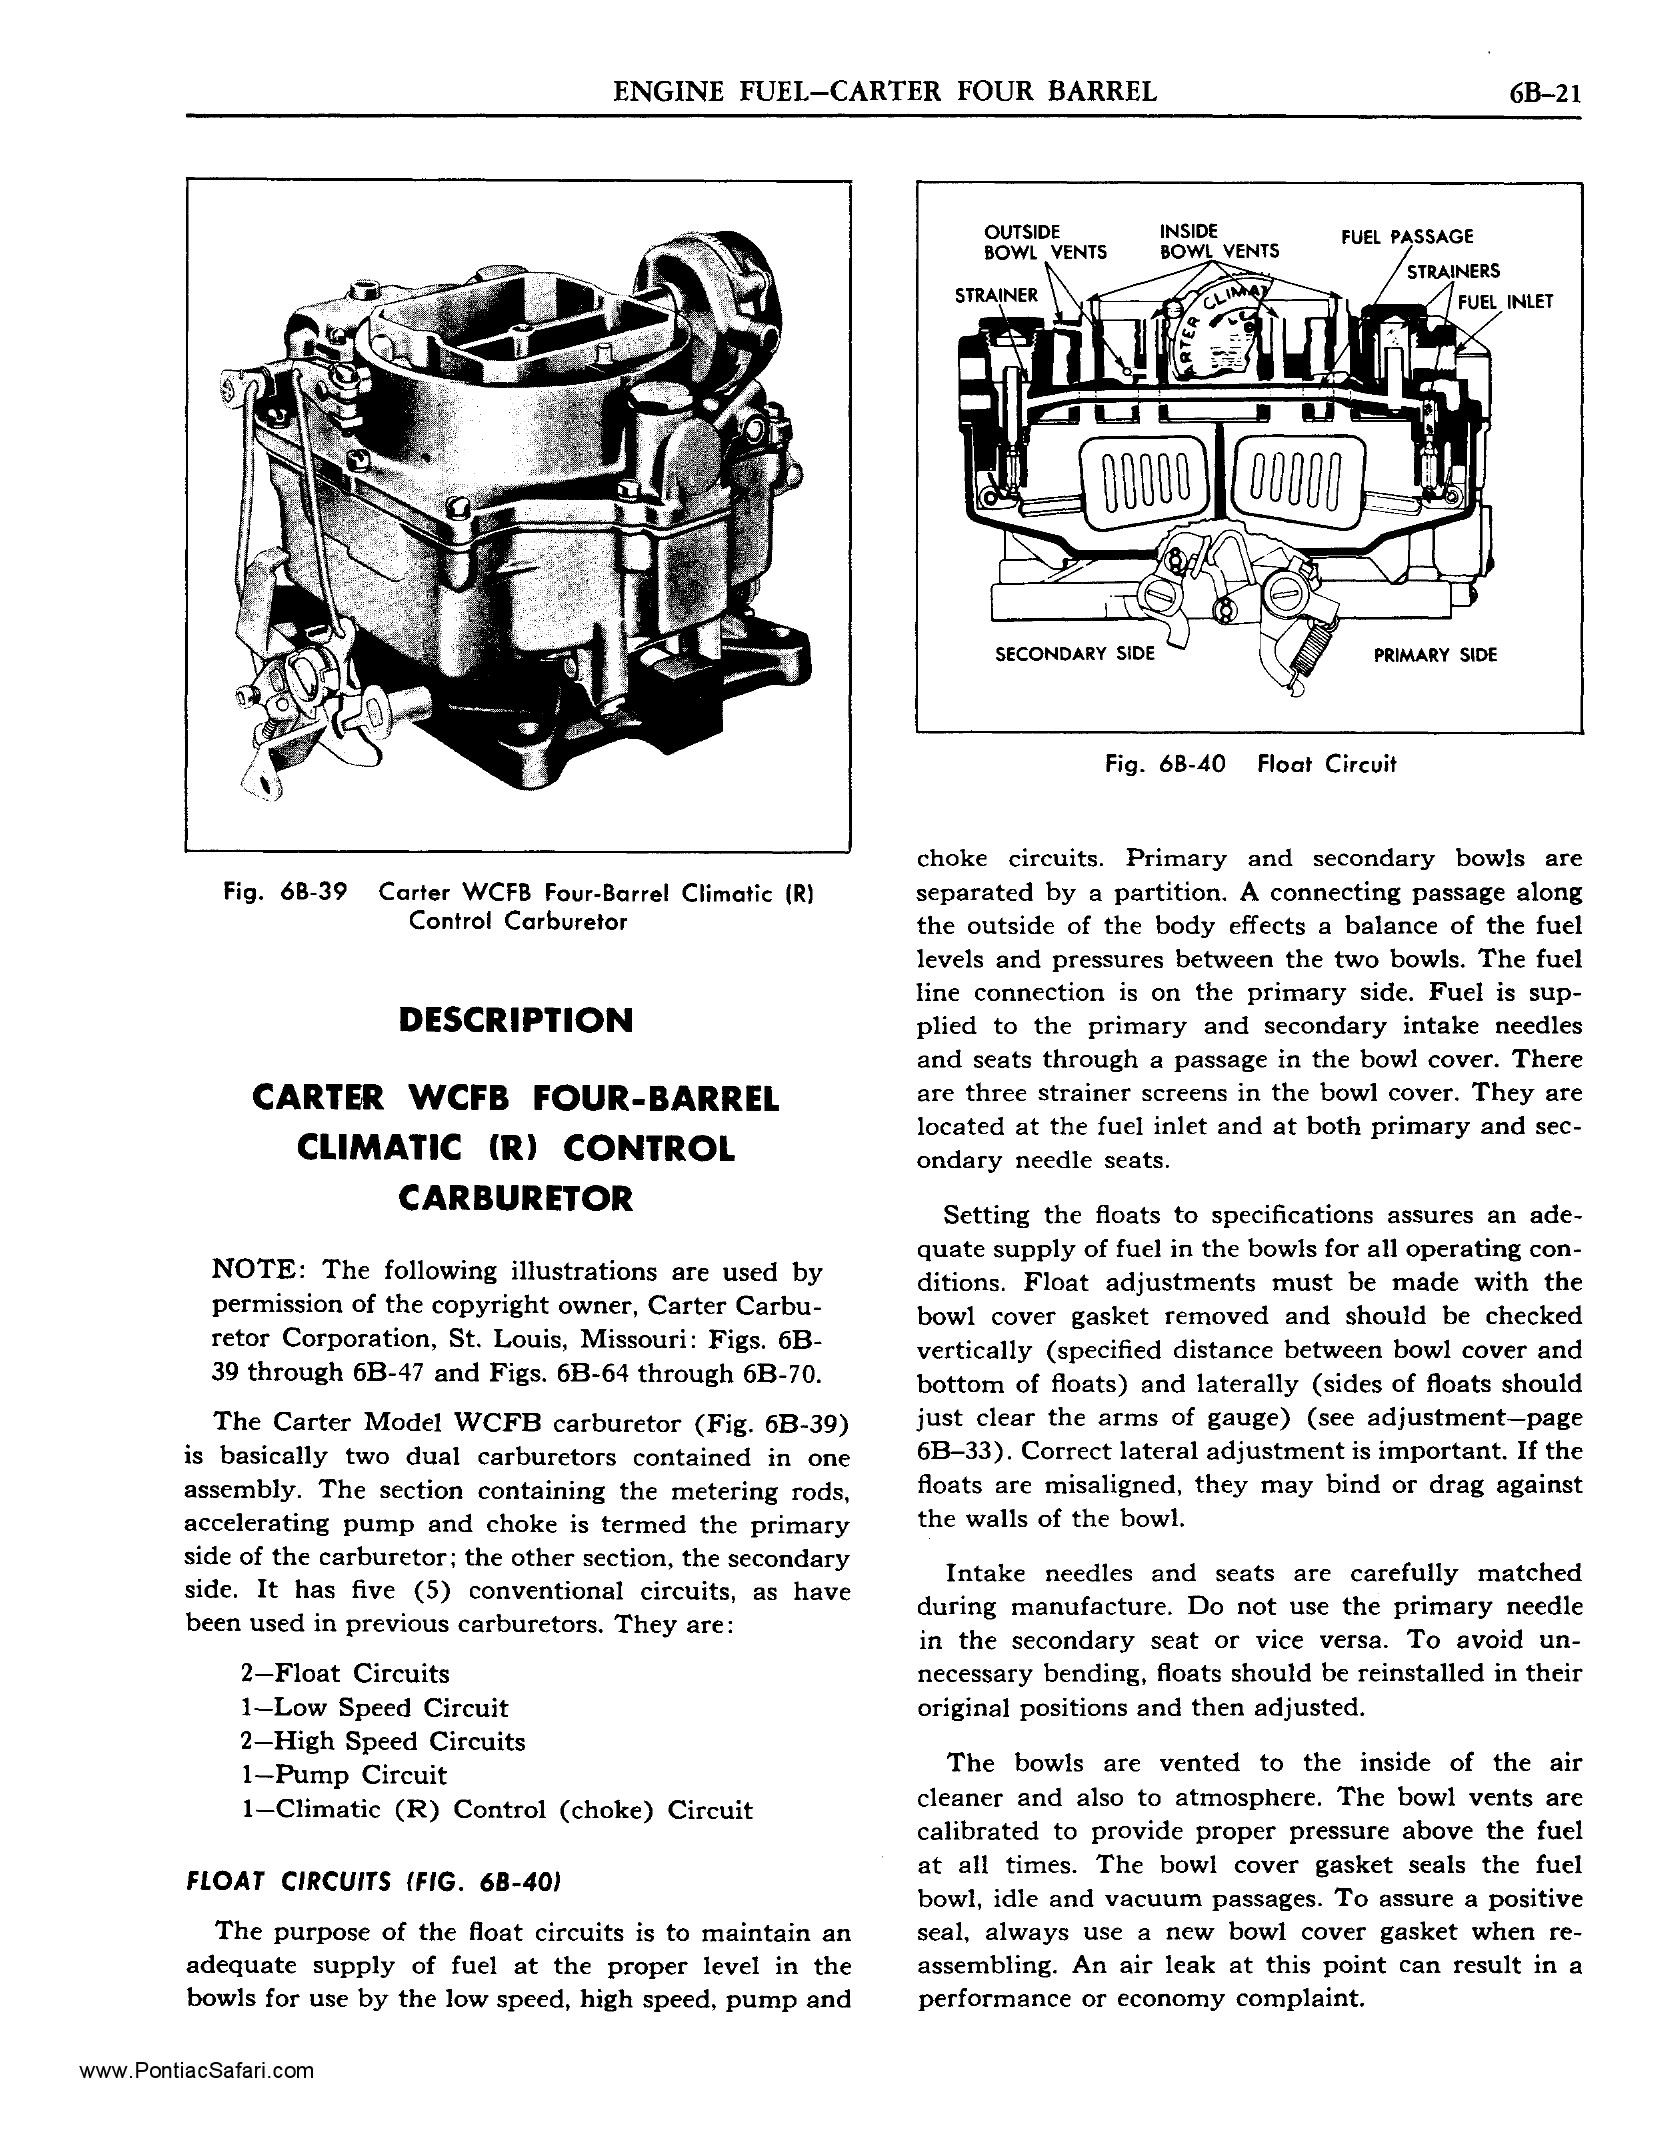 1955 Pontiac Shop Manual- Carter WCFB Four-Barrel Page 1 of 18